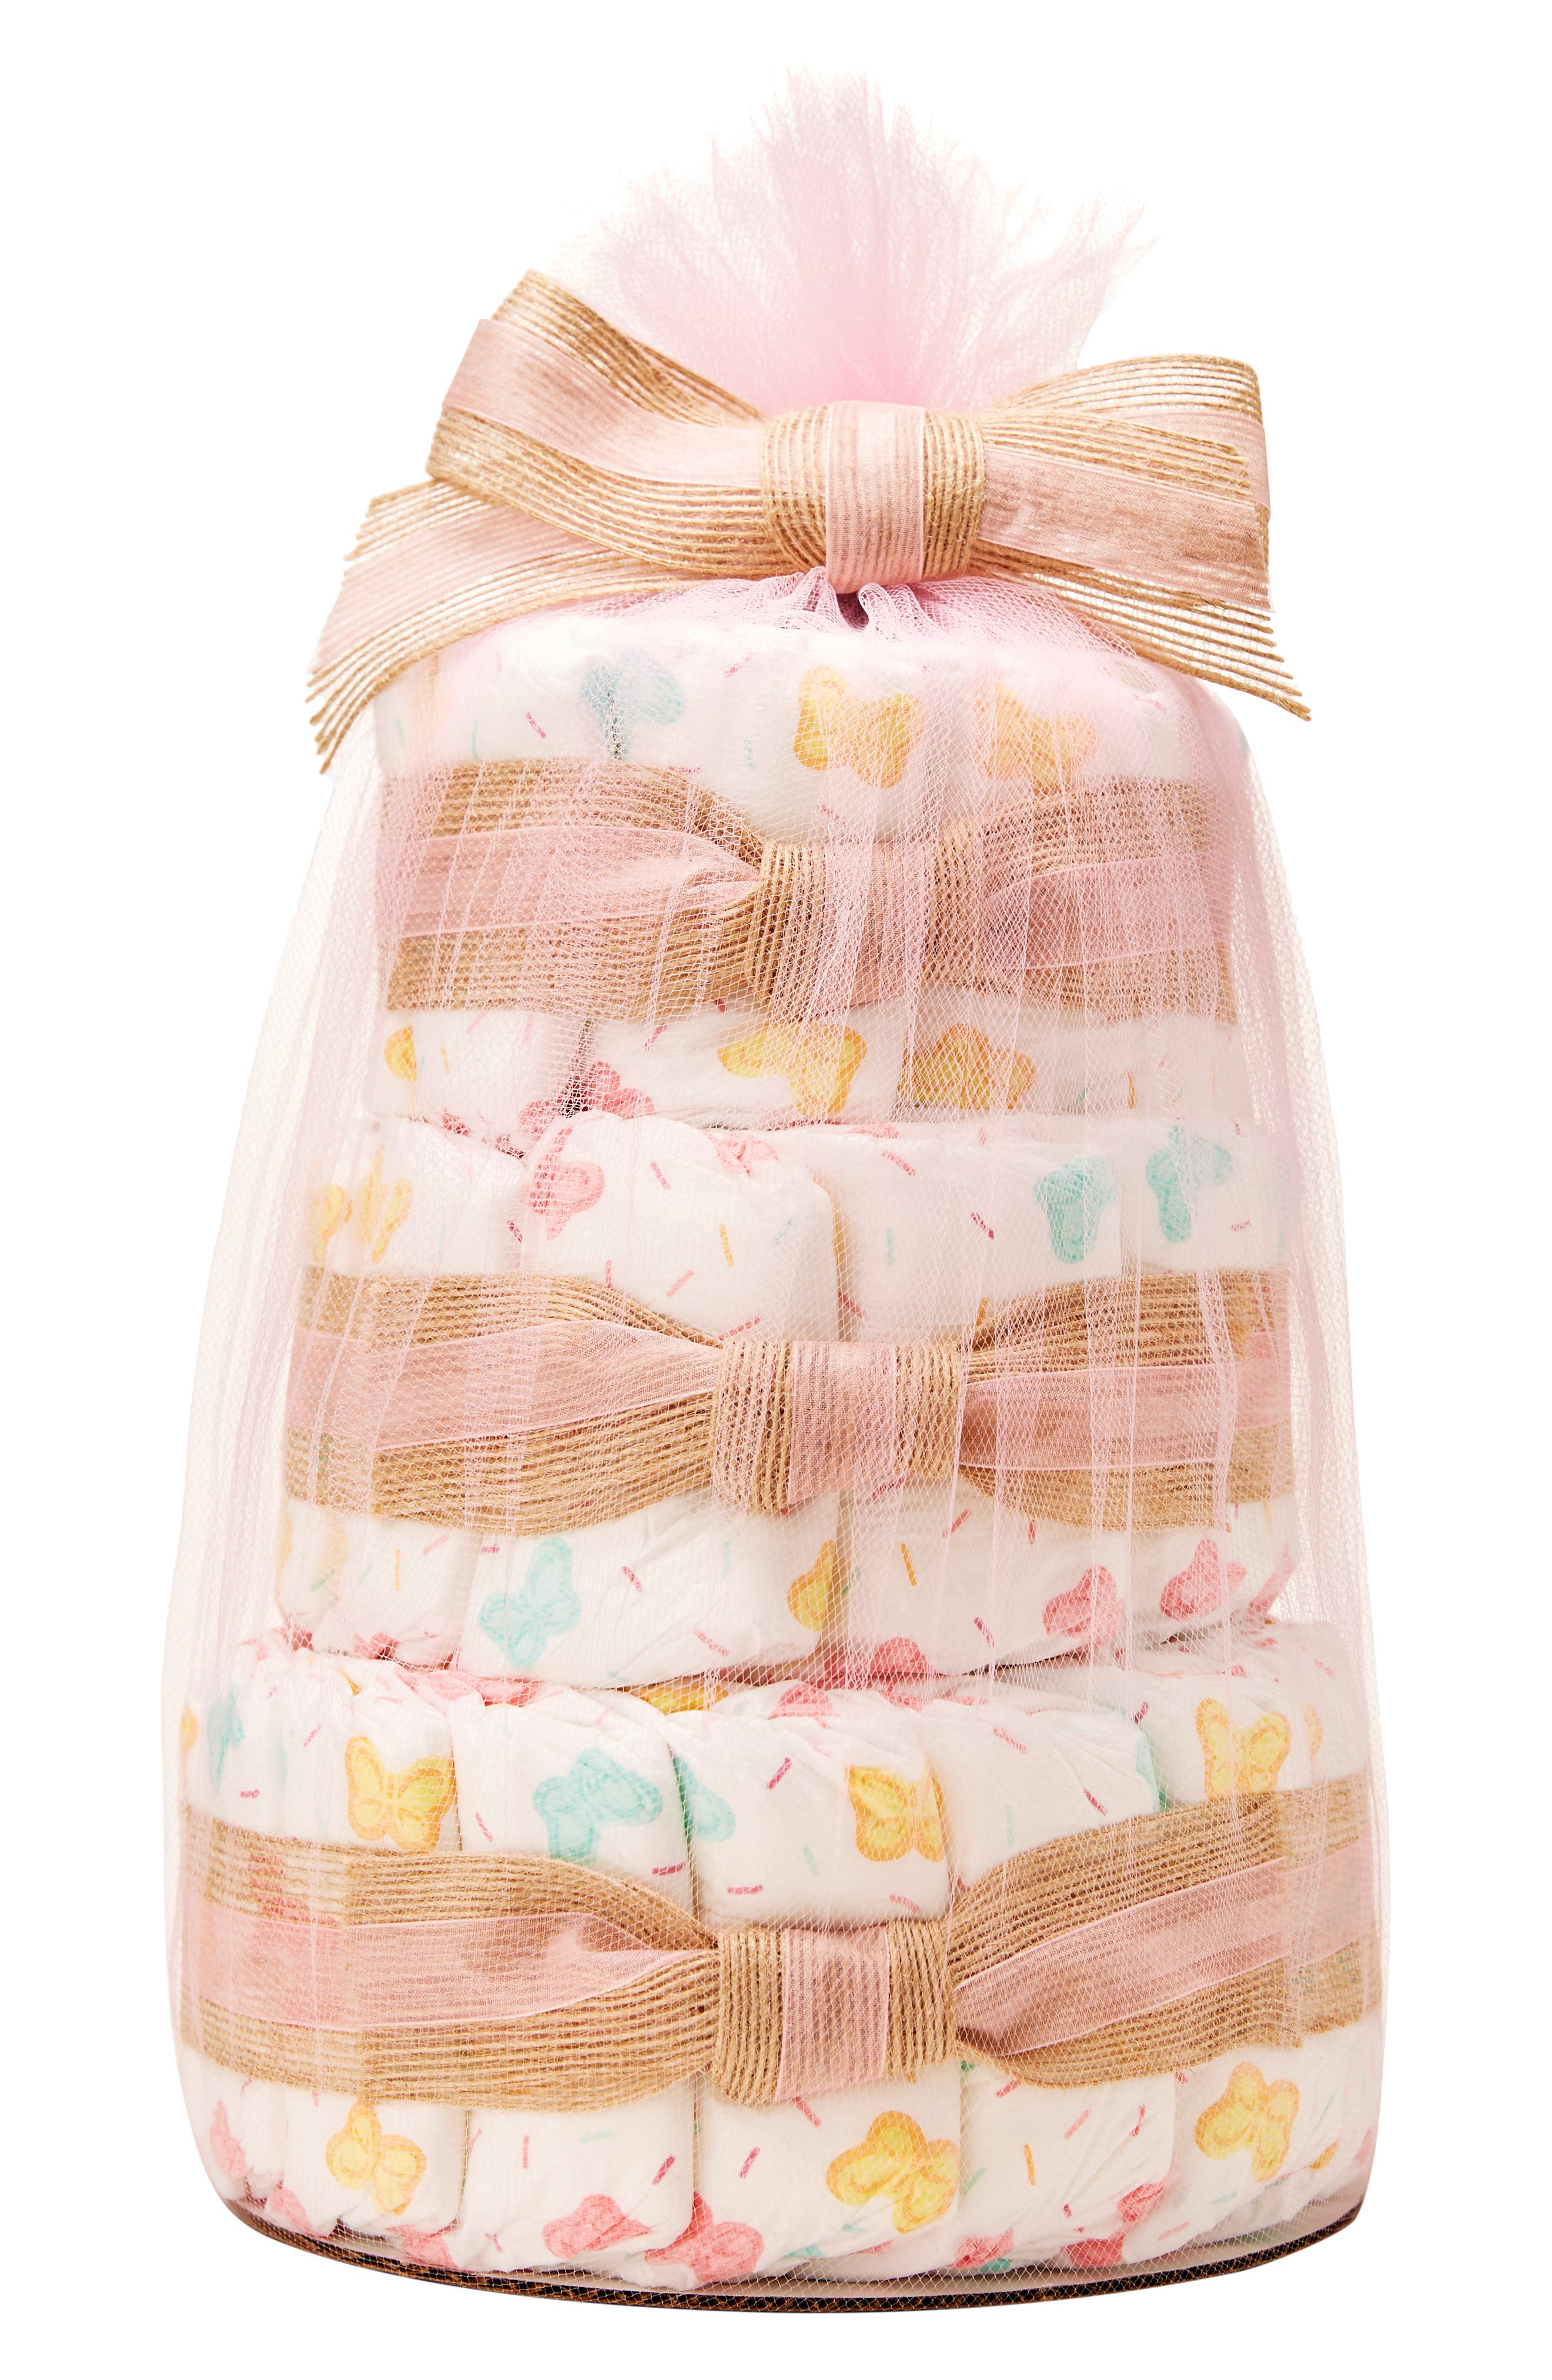 THE HONEST COMPANY, x Sugarfina Sweet Thing Mini Diaper Cake, Main thumbnail 1, color, 104